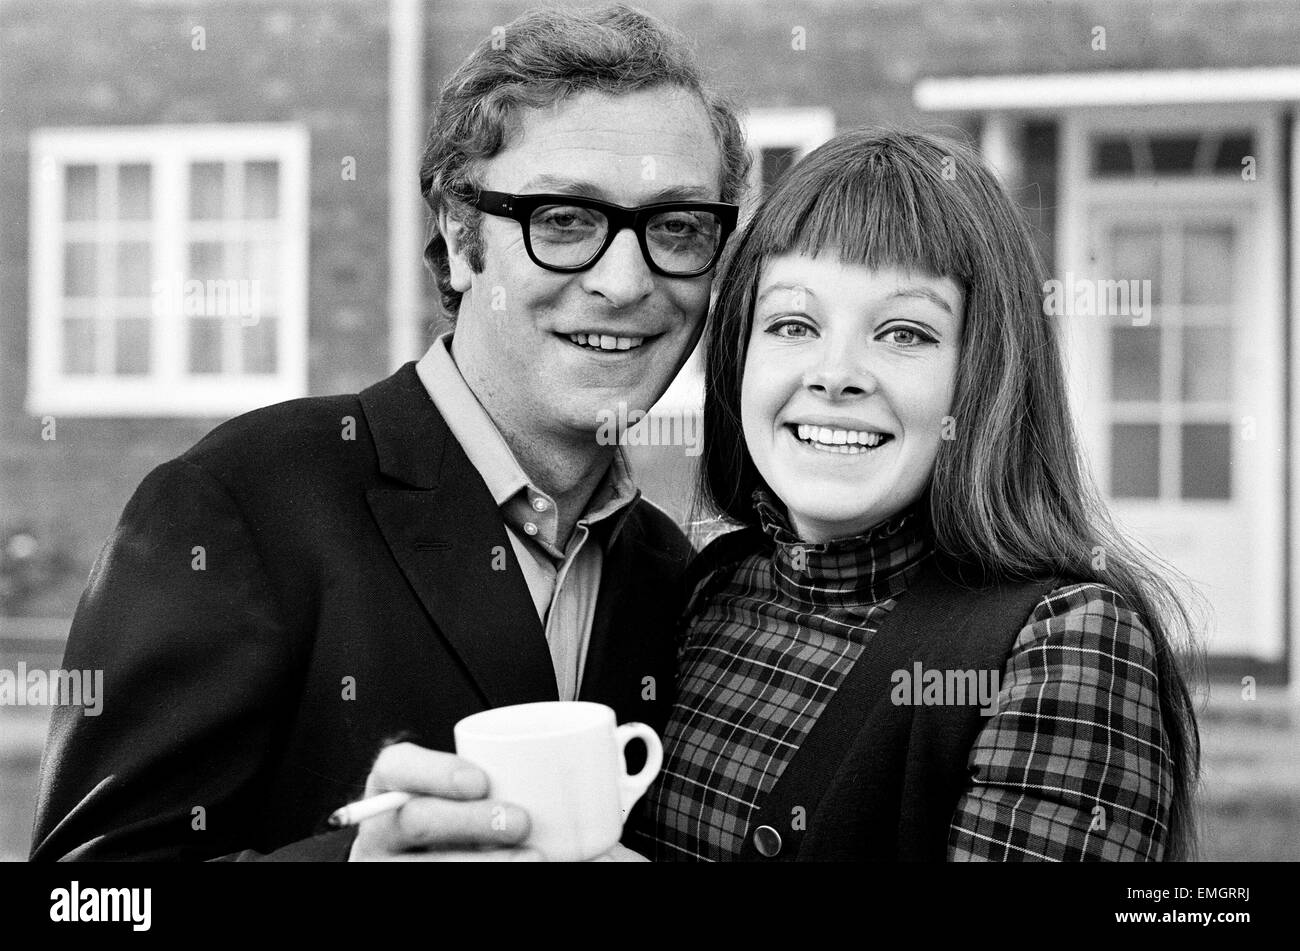 Michael Caine with actress Anna Calder-Marshall. 21st October 1968. - Stock Image